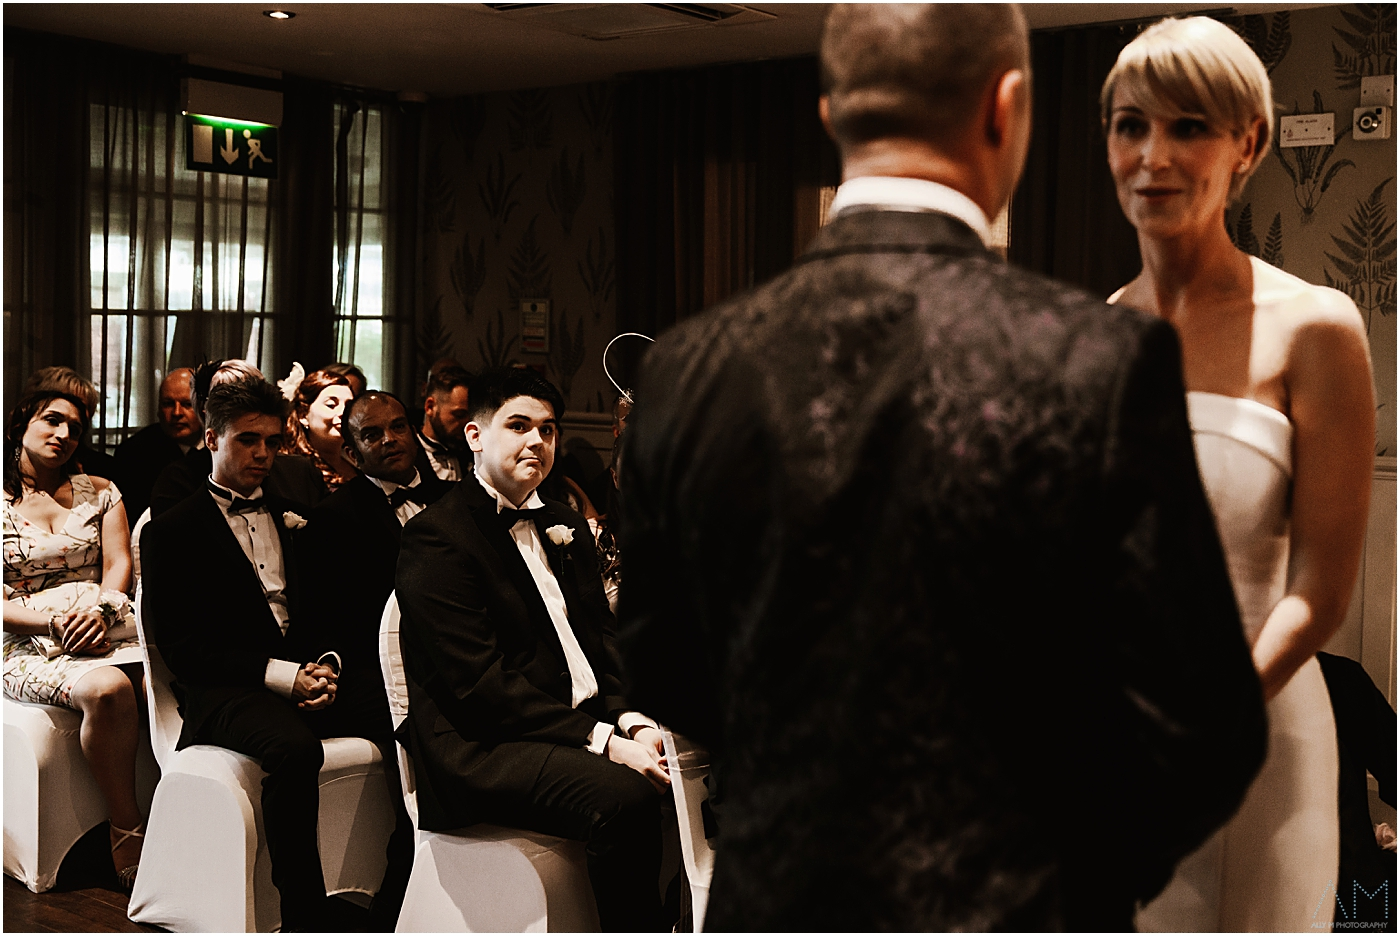 Wedding guest looking on